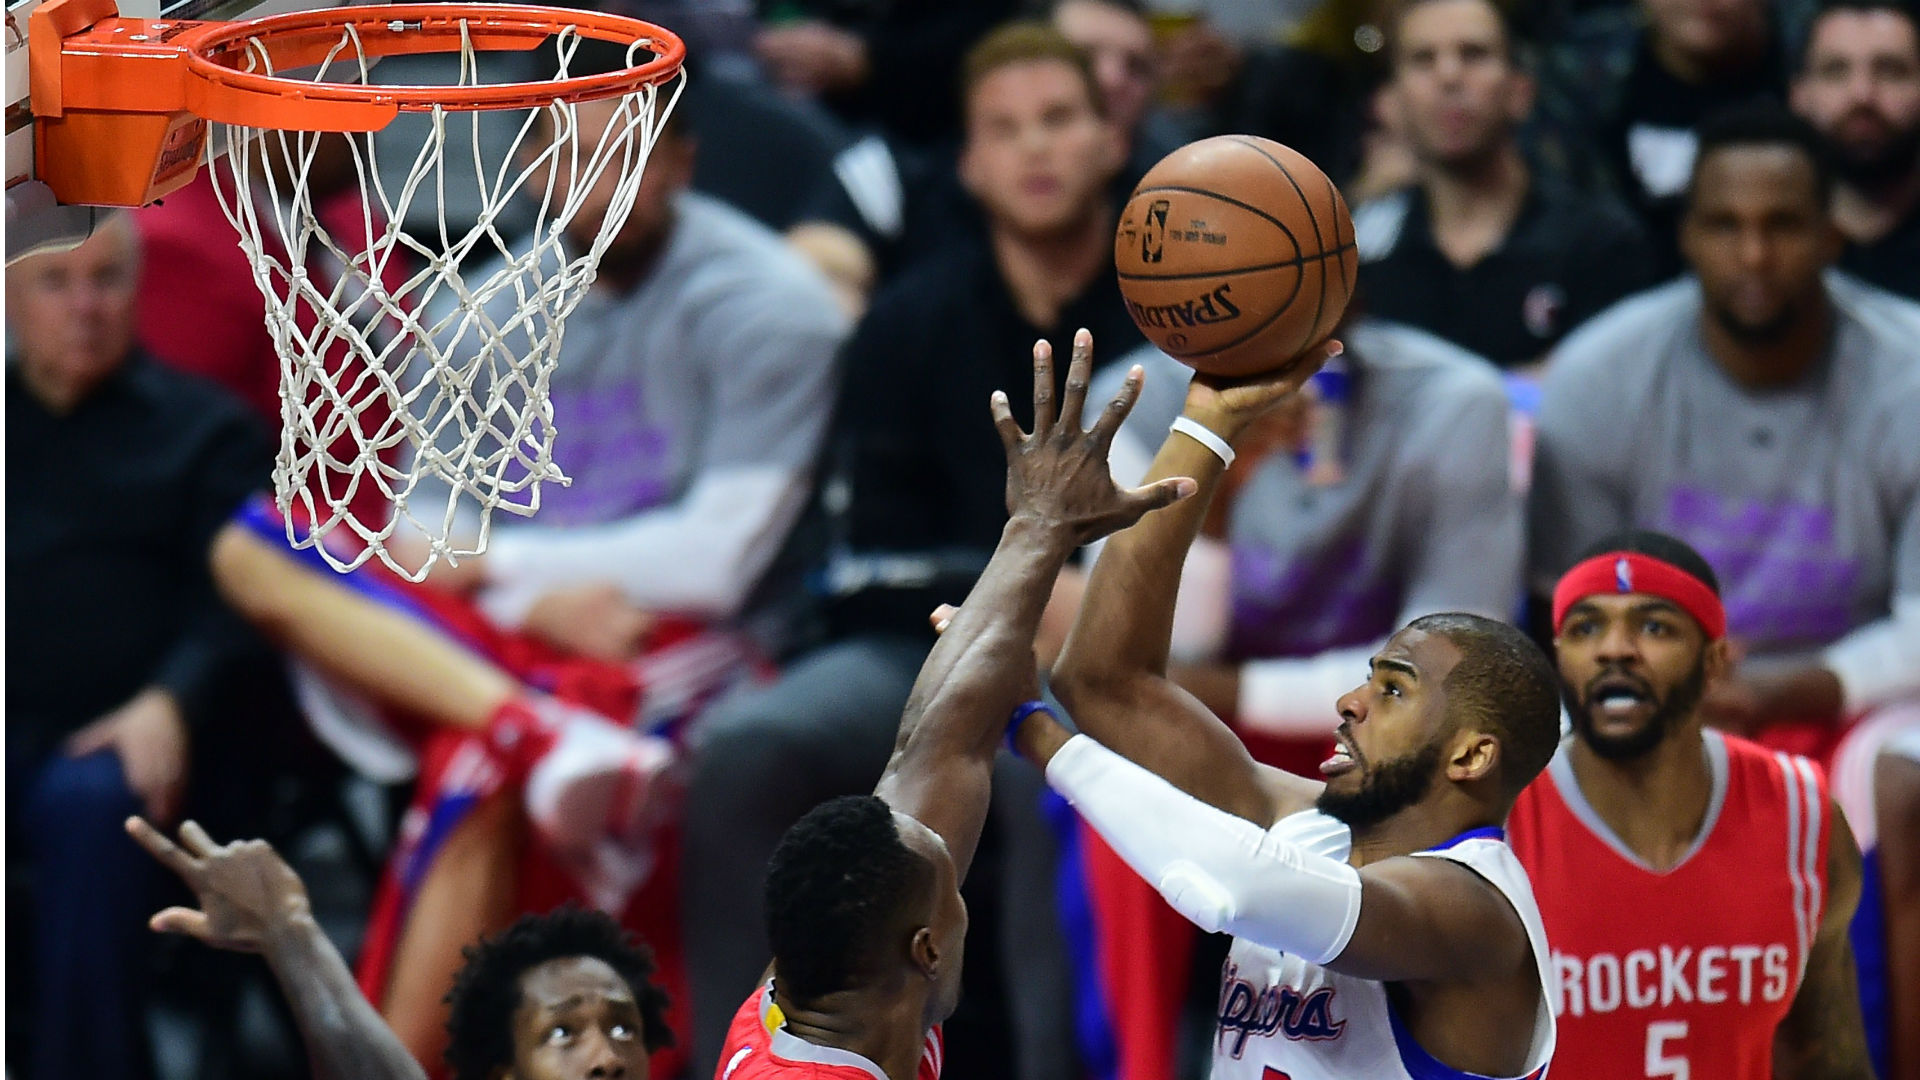 NBA Playoffs preview: Los Angeles Clippers vs. Houston Rockets